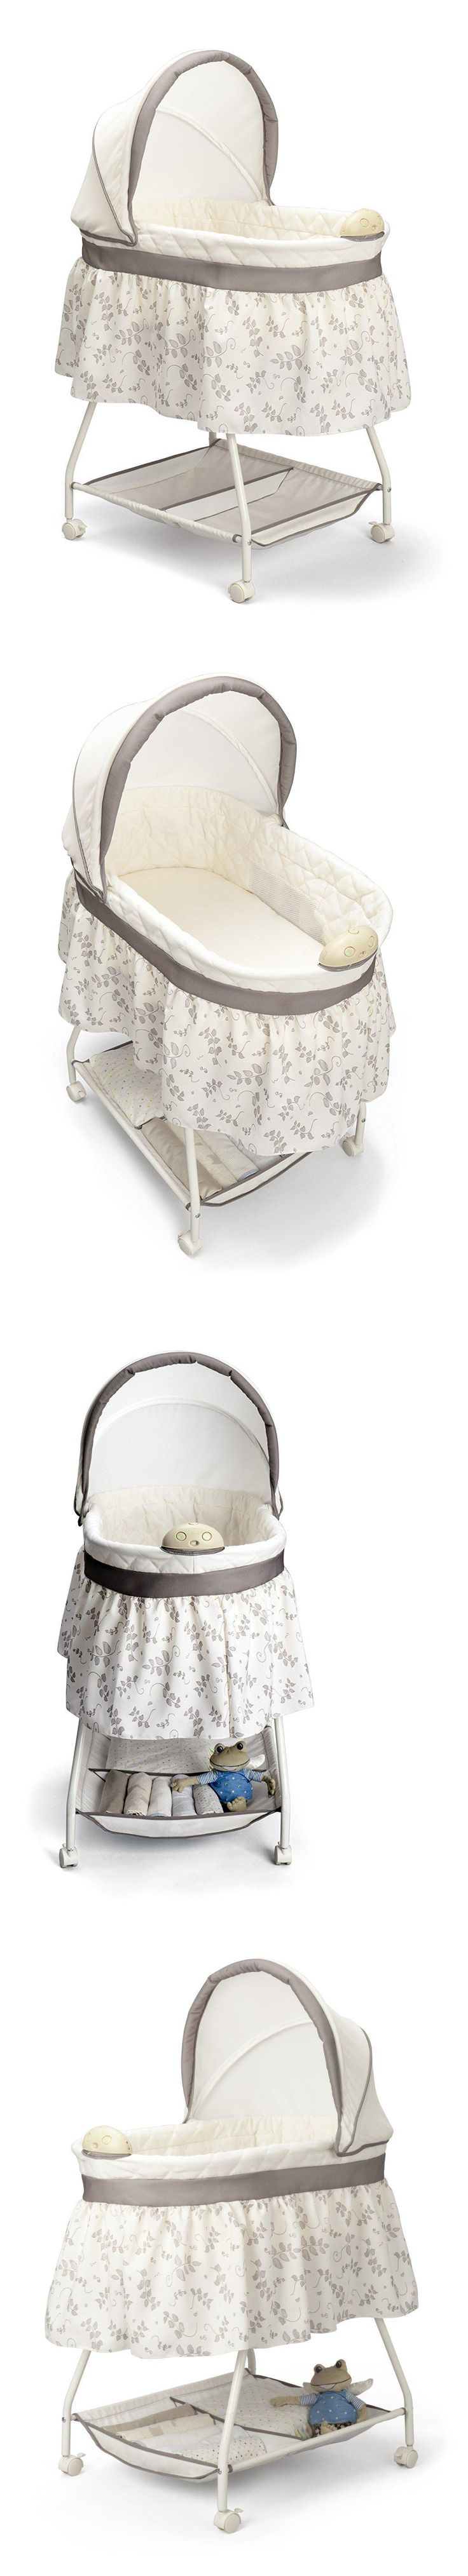 Bassinets and Cradles 20423: Baby Bassinet Portable Rocking Music Nursery Crib Cradle Sleeper -> BUY IT NOW ONLY: $46.89 on eBay!